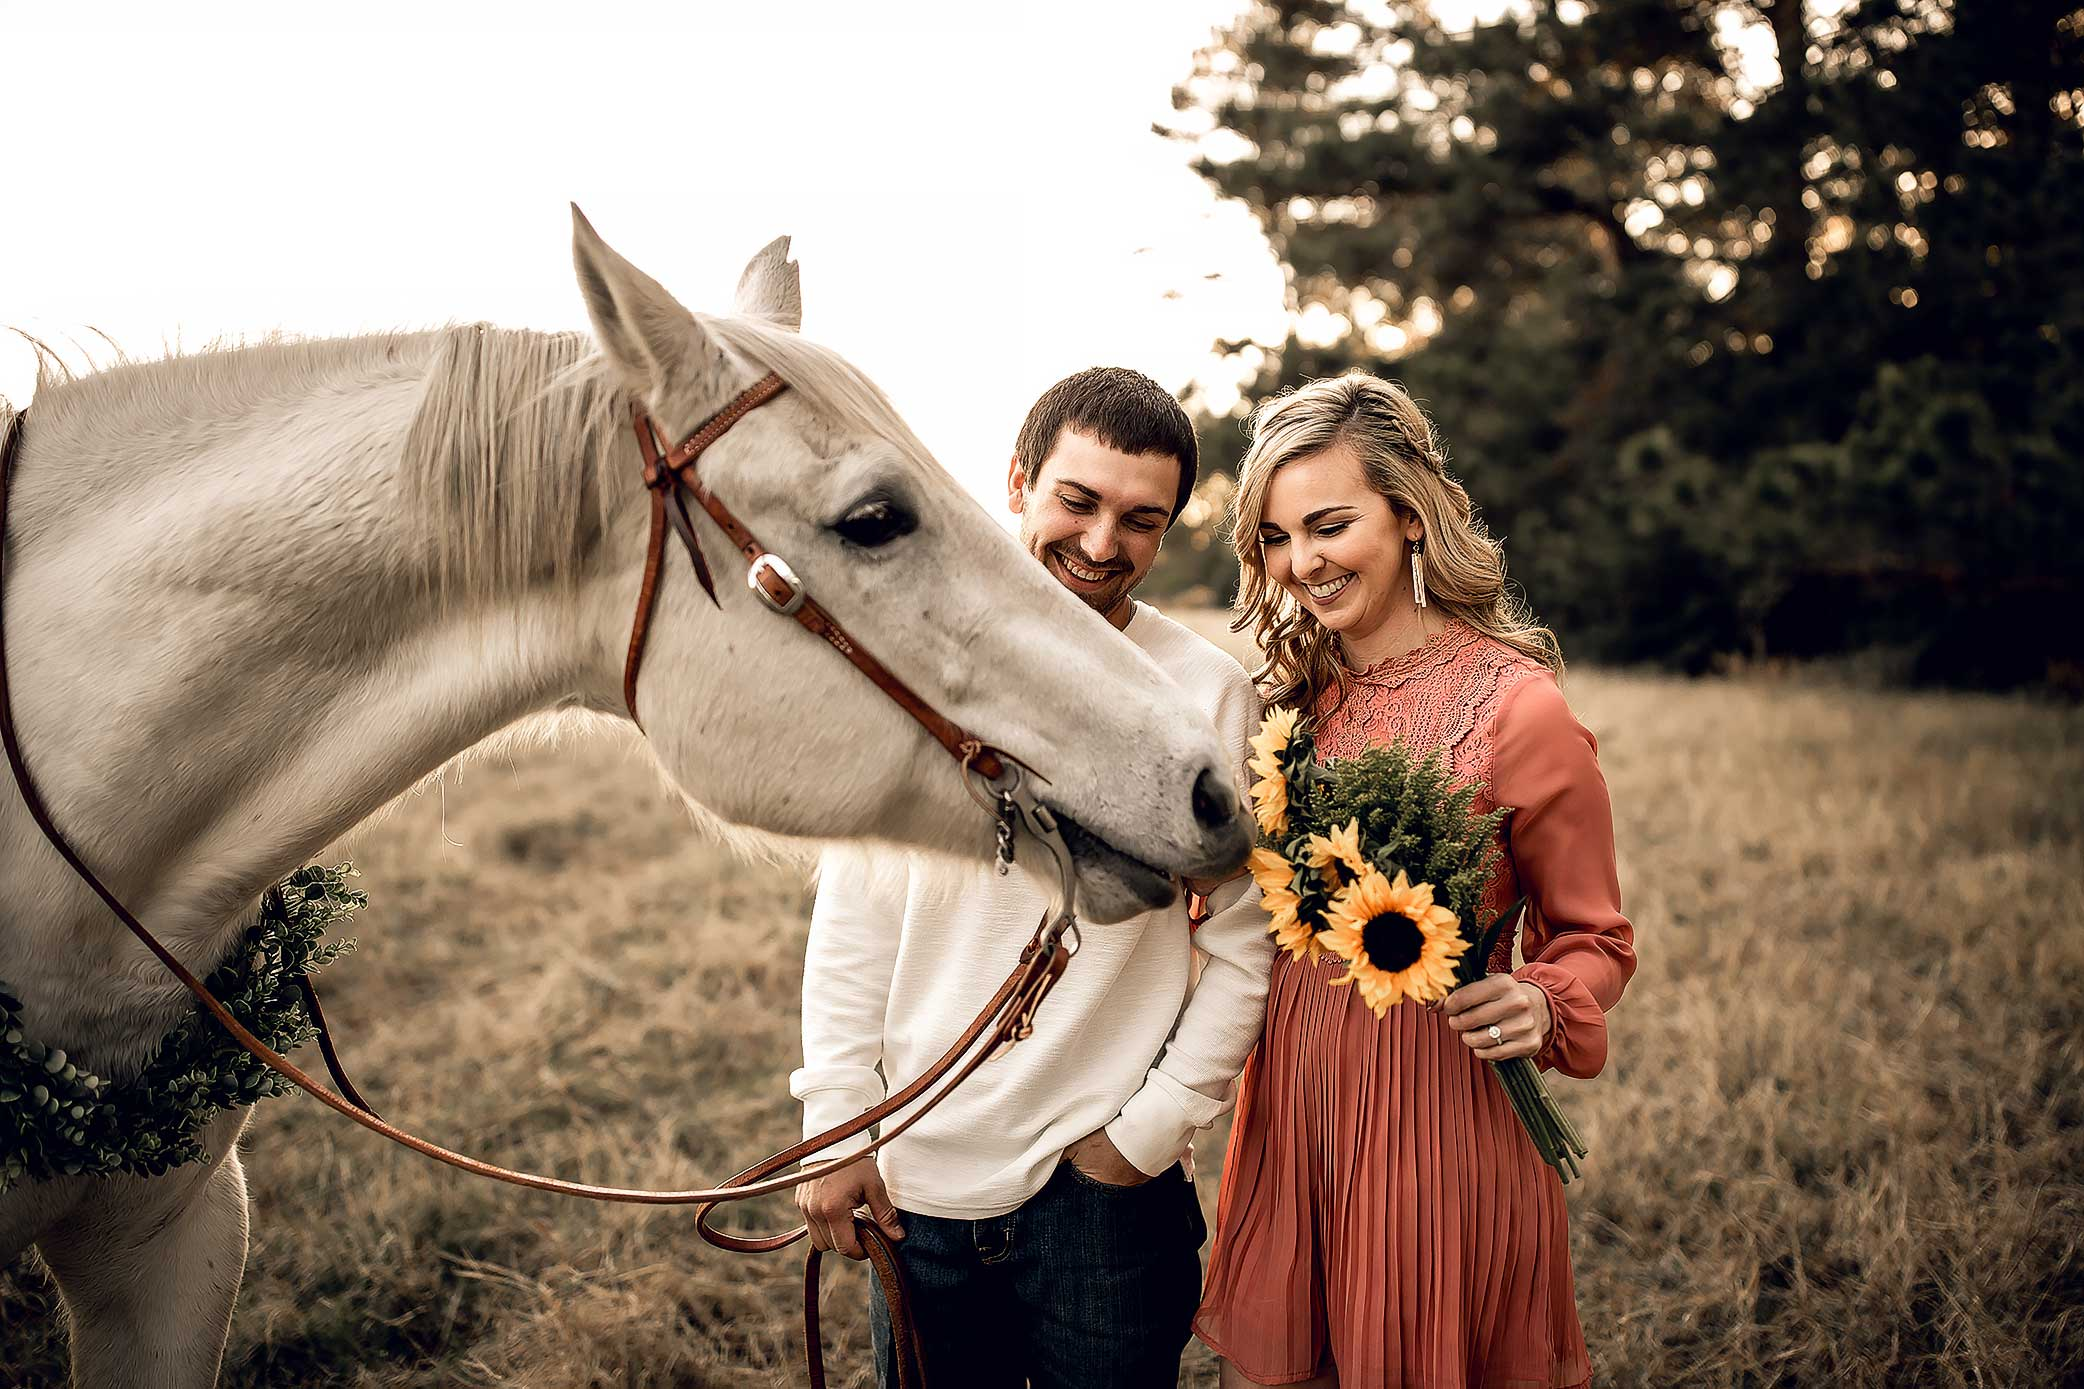 shelby-schiller-photography-couples-horse-and-sunflowers-in-field.jpg